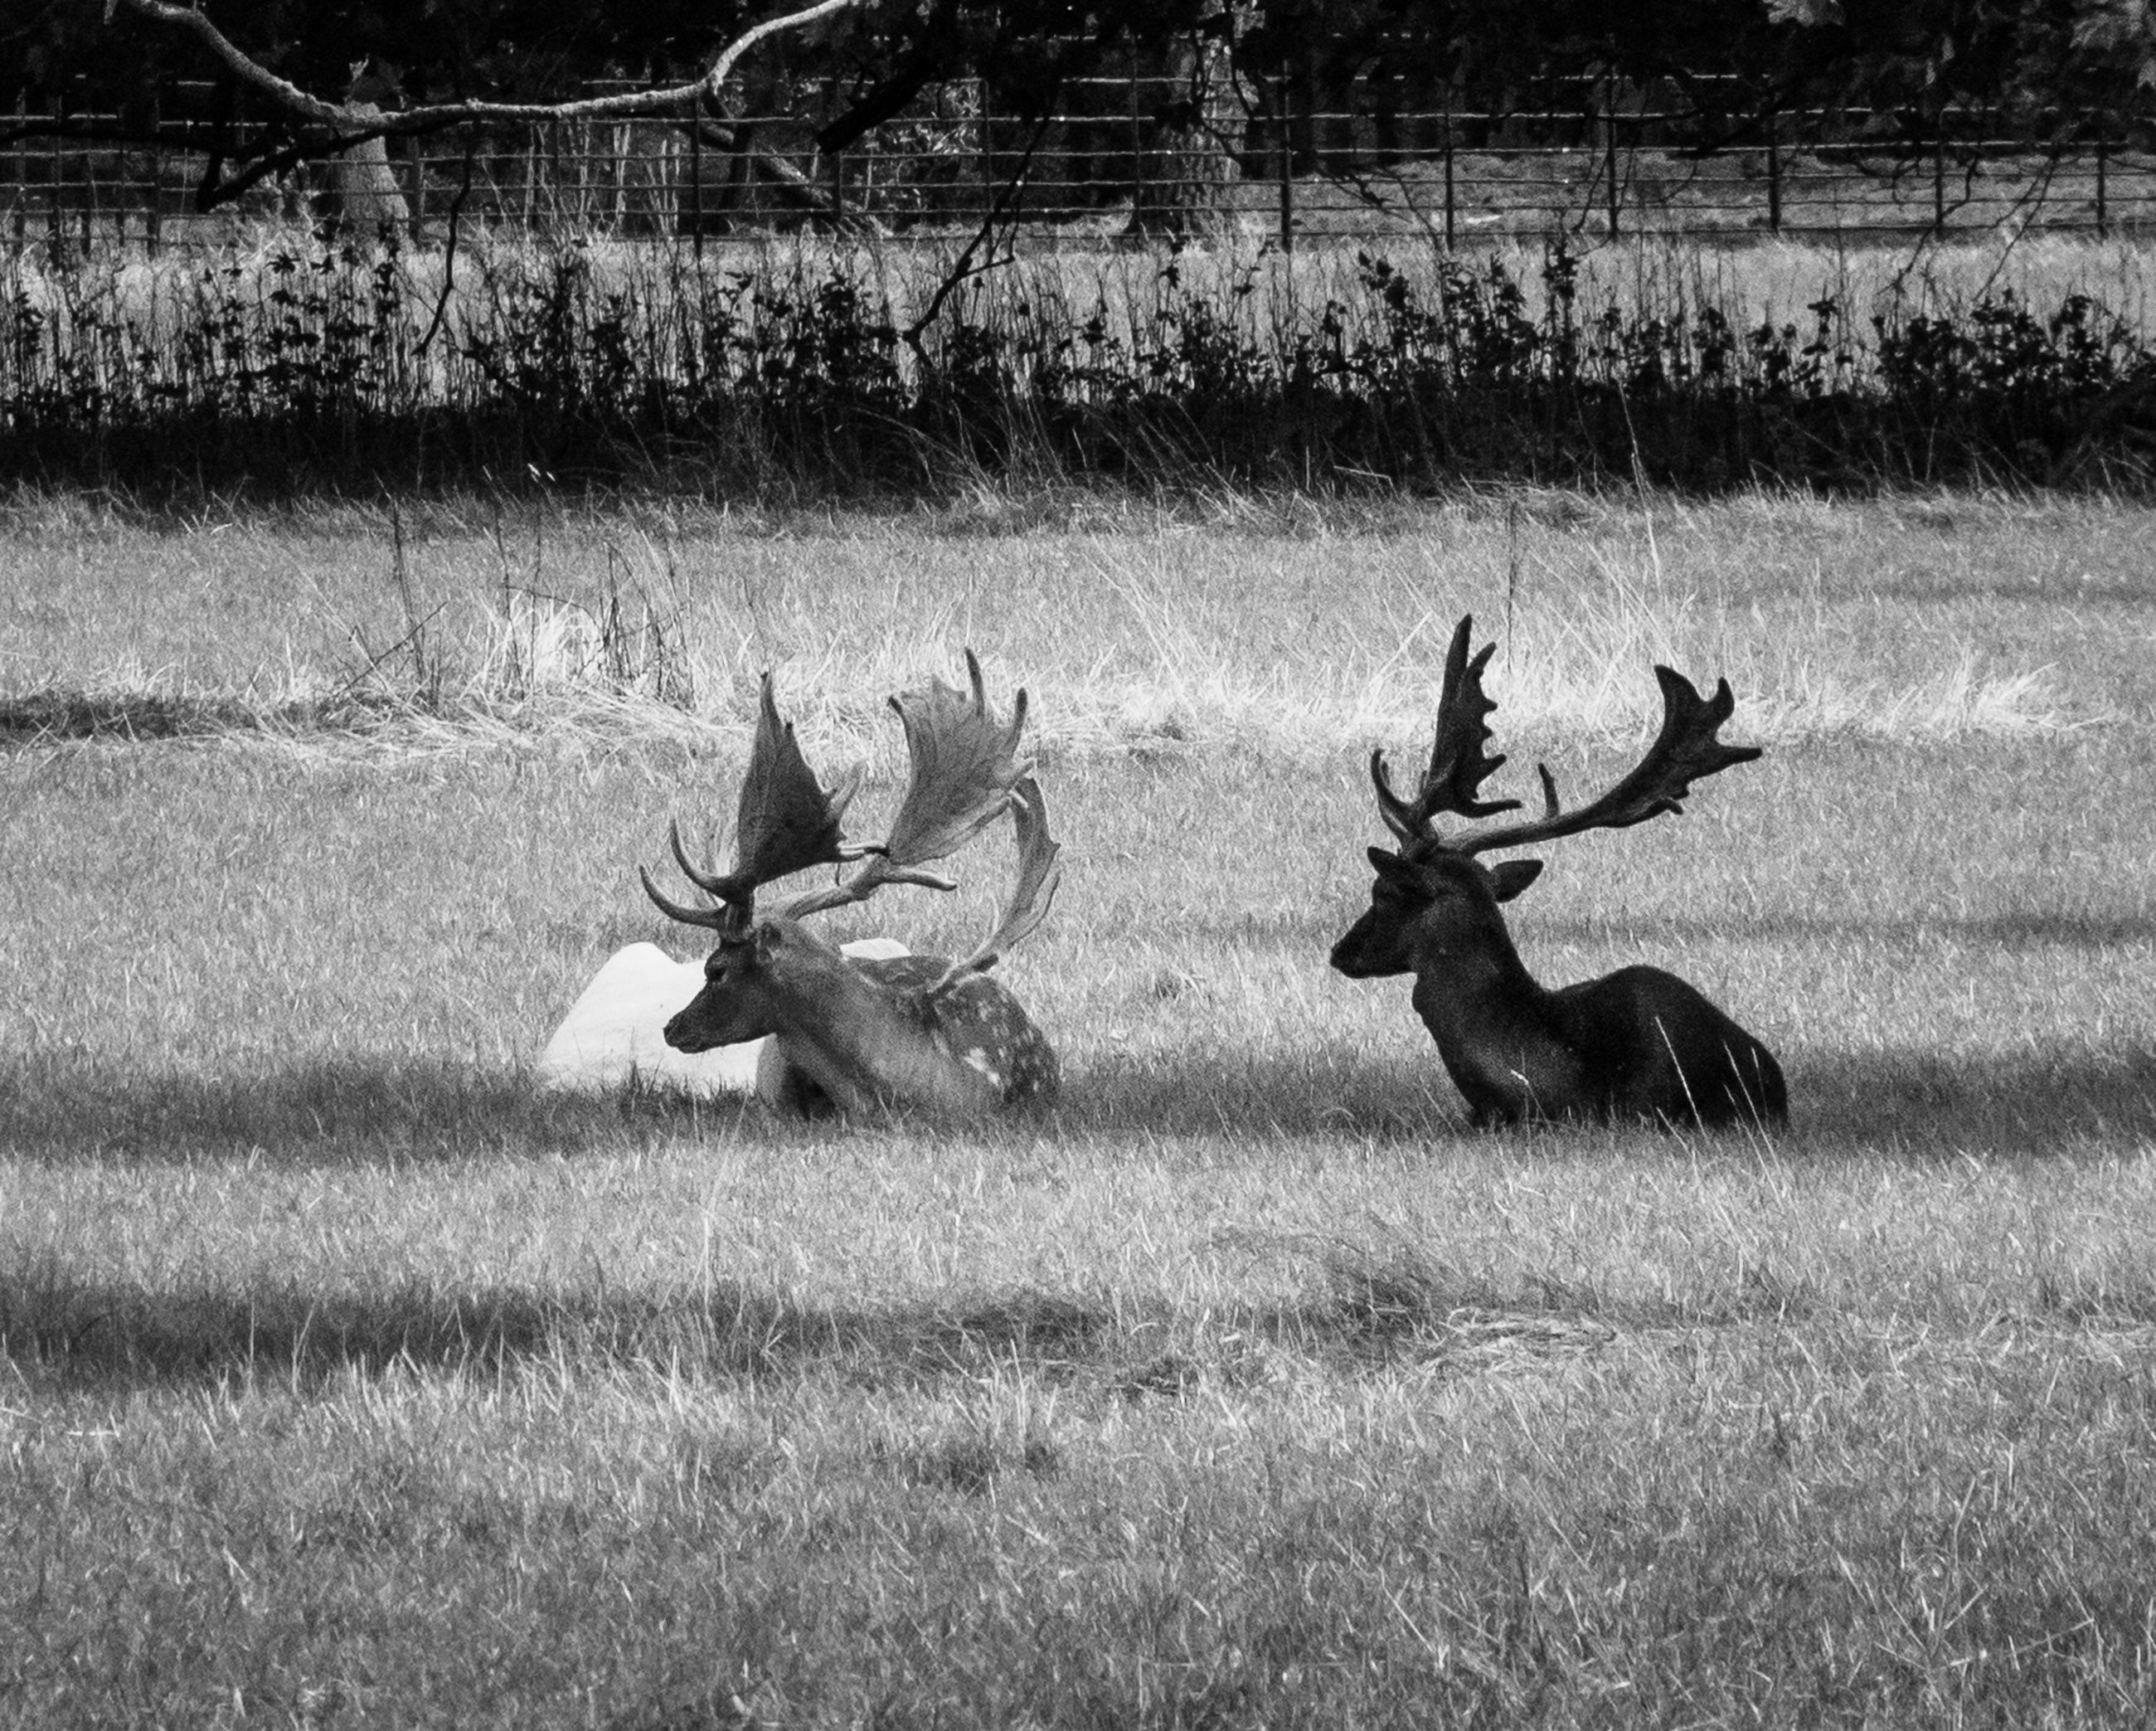 animal, animal themes, animal wildlife, group of animals, mammal, antler, animals in the wild, grass, deer, field, plant, land, two animals, vertebrate, nature, day, no people, environment, landscape, outdoors, herbivorous